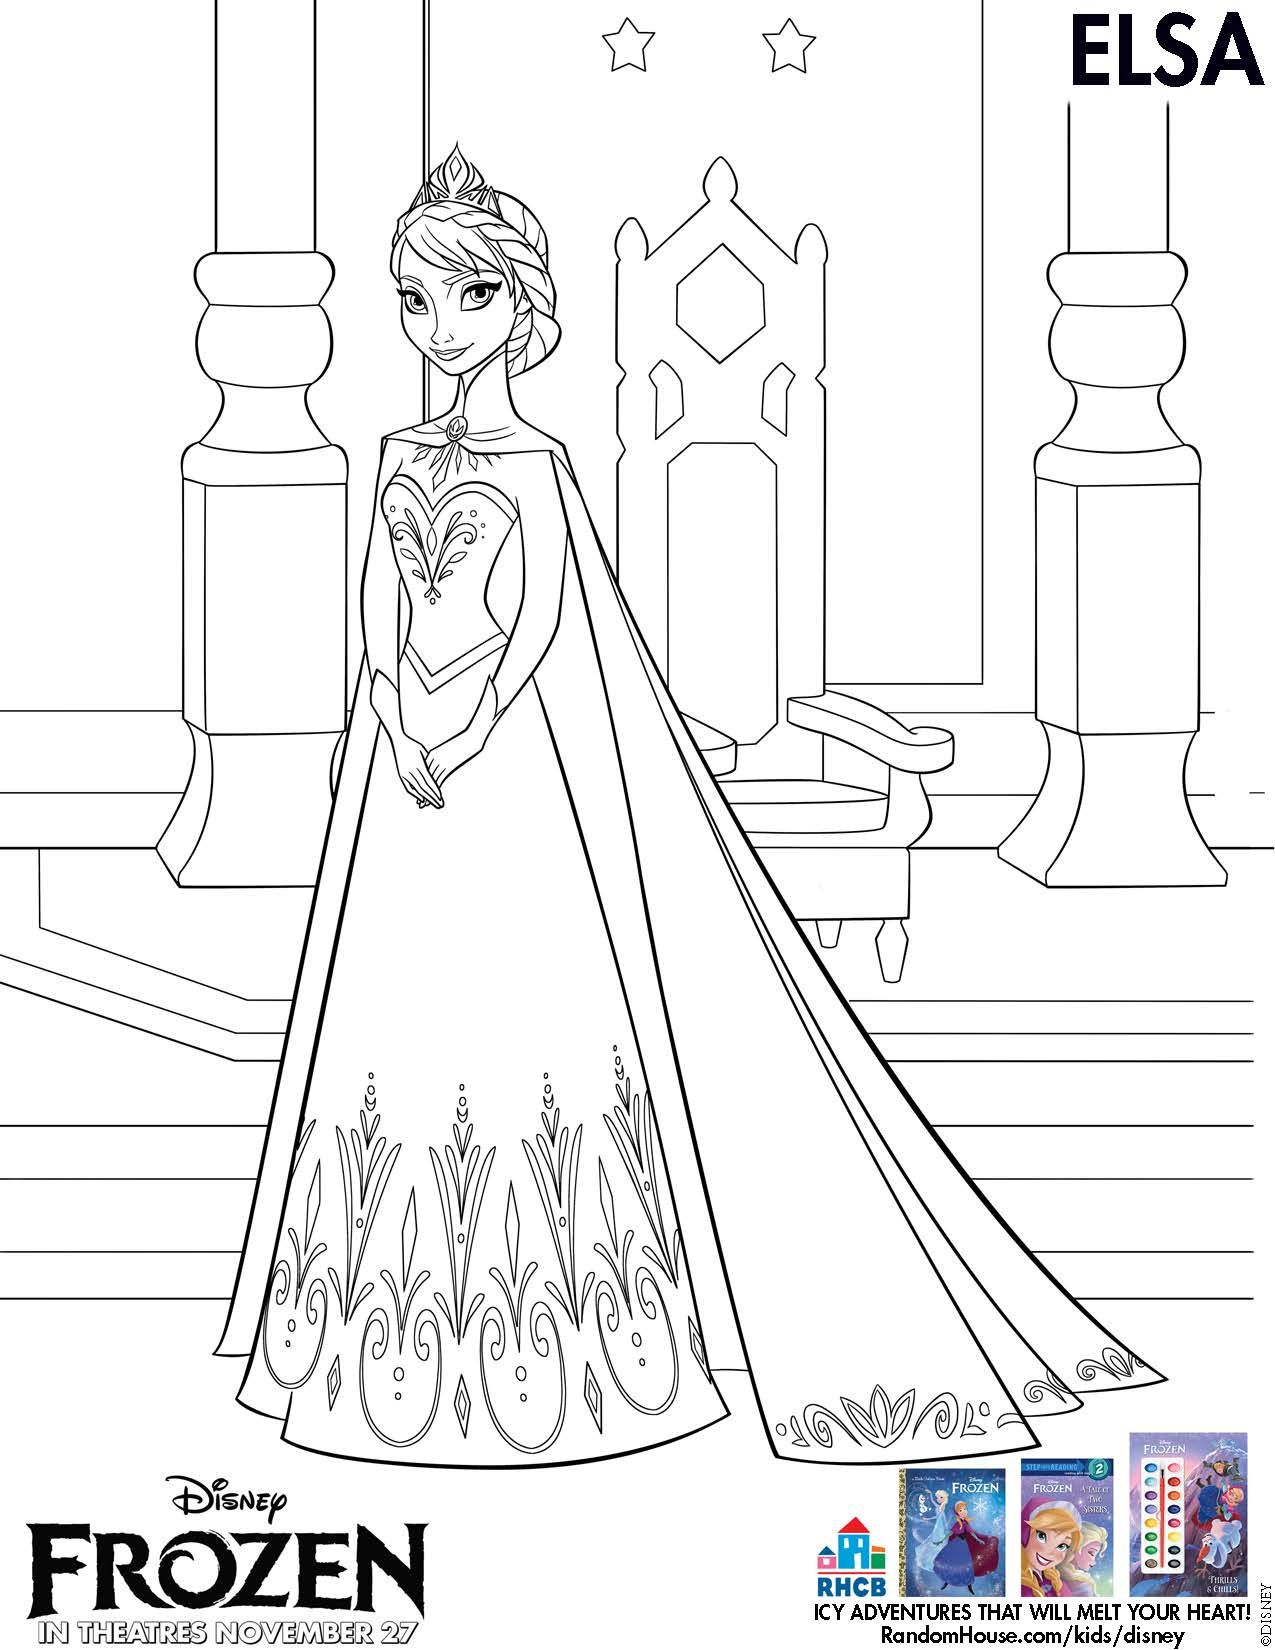 Disney Family Recipes Crafts And Activities Frozen Coloring Pages Elsa Coloring Elsa Coloring Pages